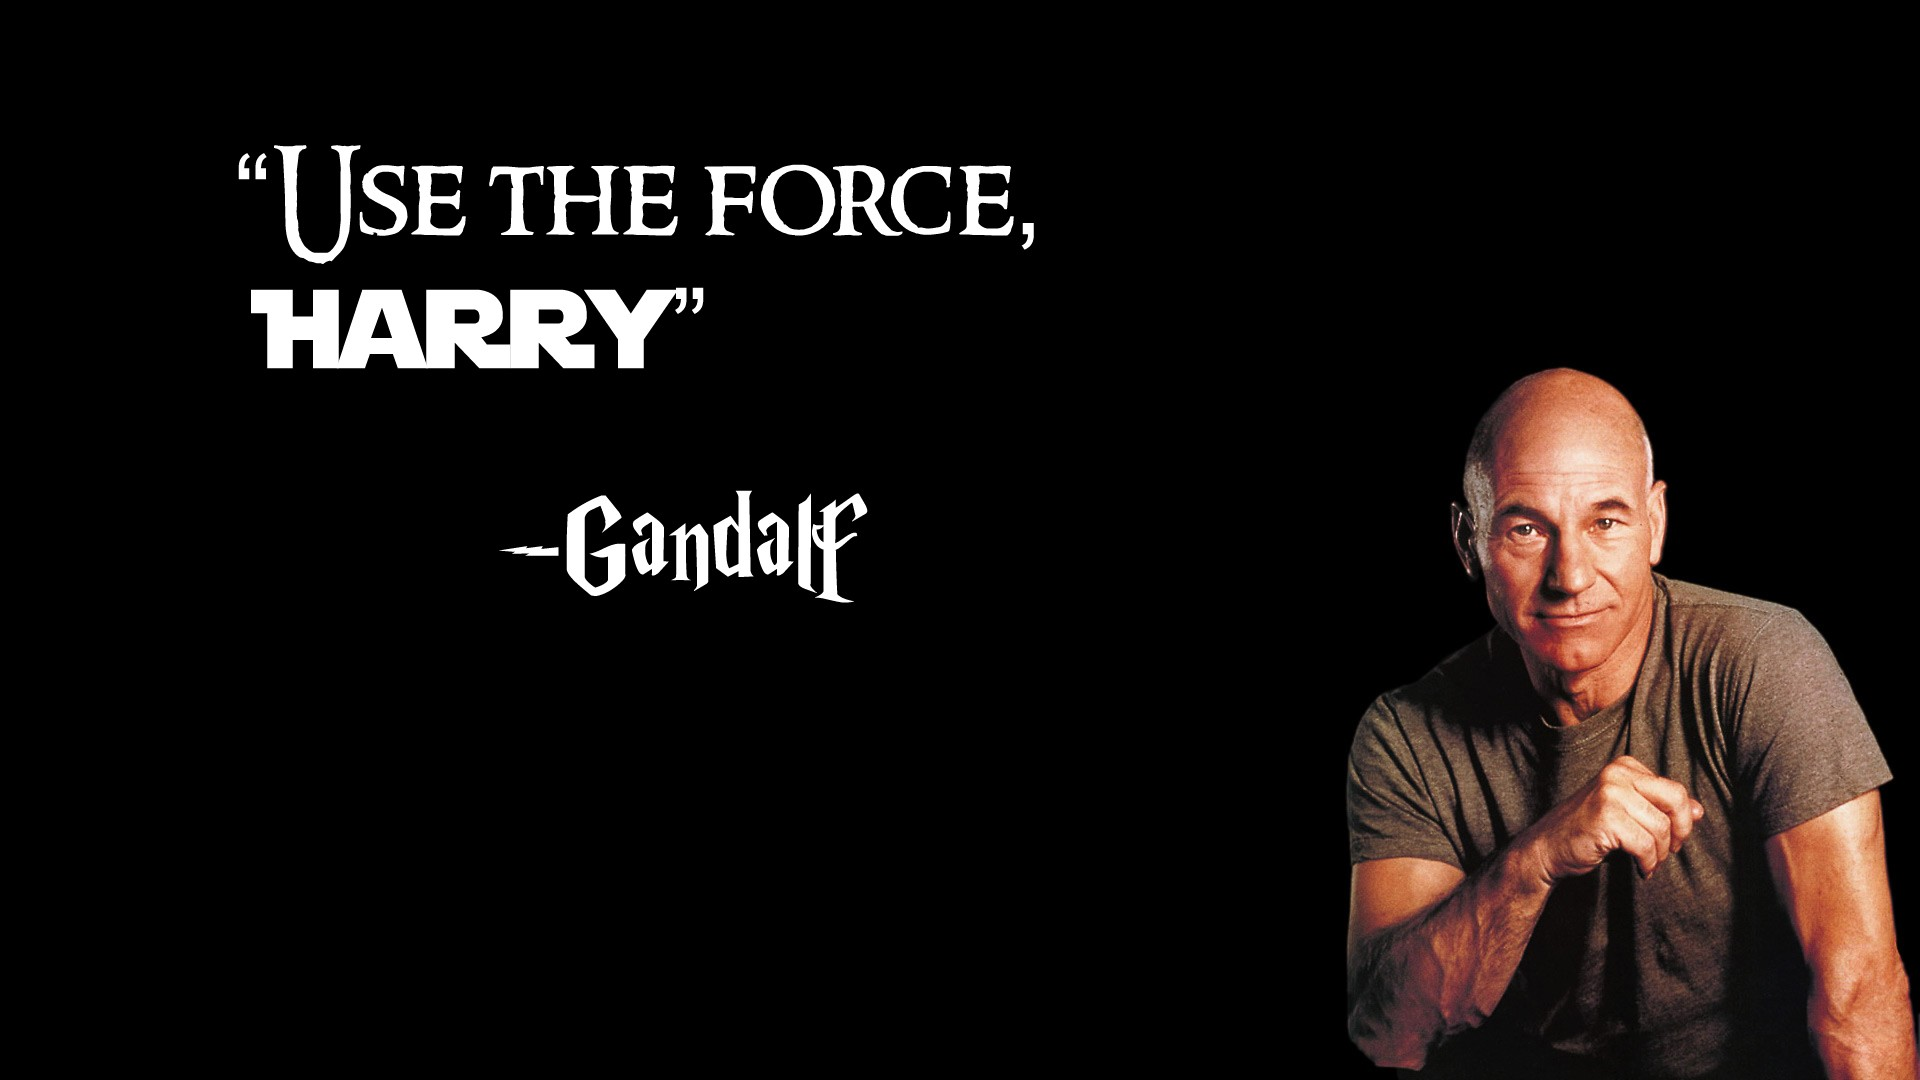 Use the force, Harry -- Gandalf